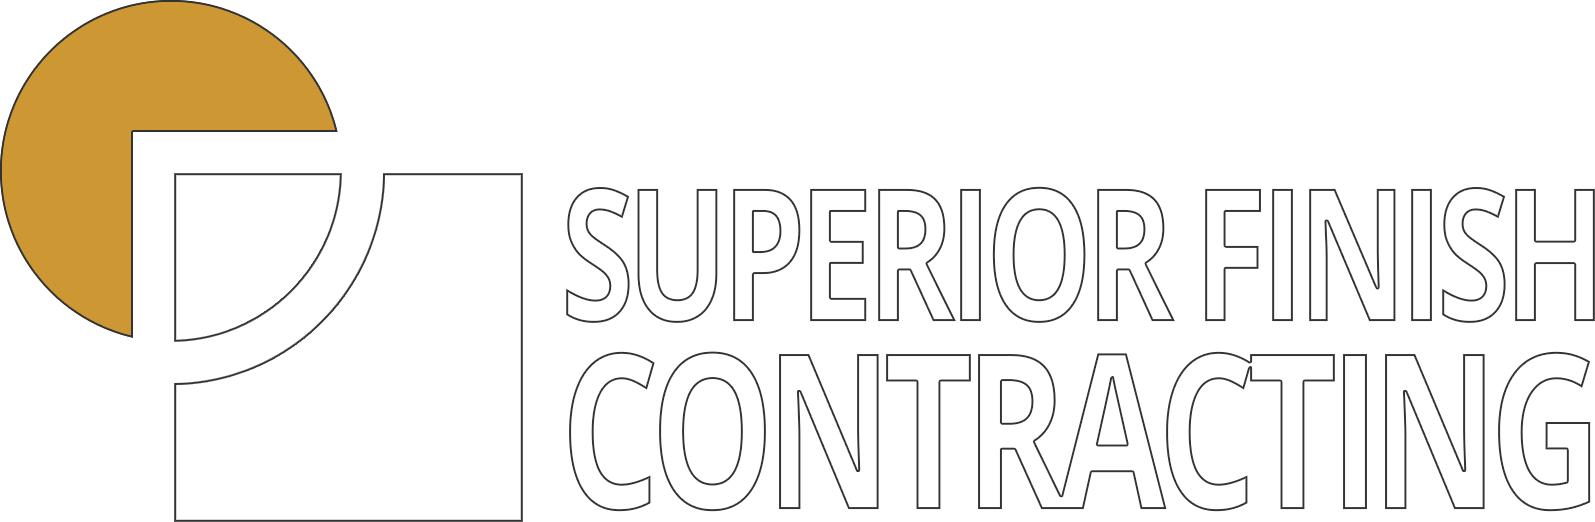 superior-finish-contracting-logo-4